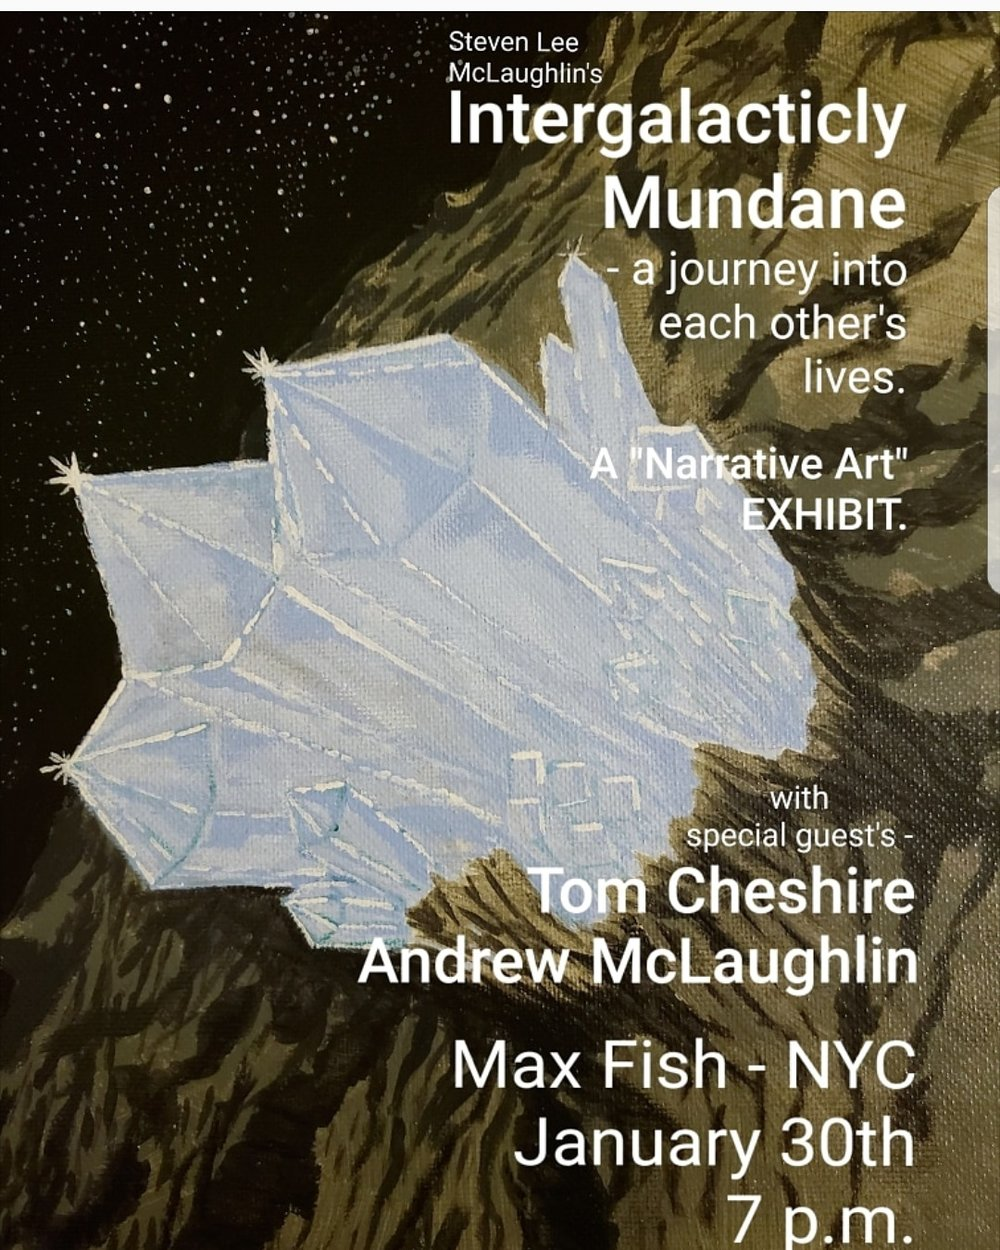 Art Debut by Steven Lee McLaughlin @mcstevenish with special musical guests Tom Chesire @tomchesiresingers Andrew McLaughlin @opnecs and Dave Brancato @davebrancato